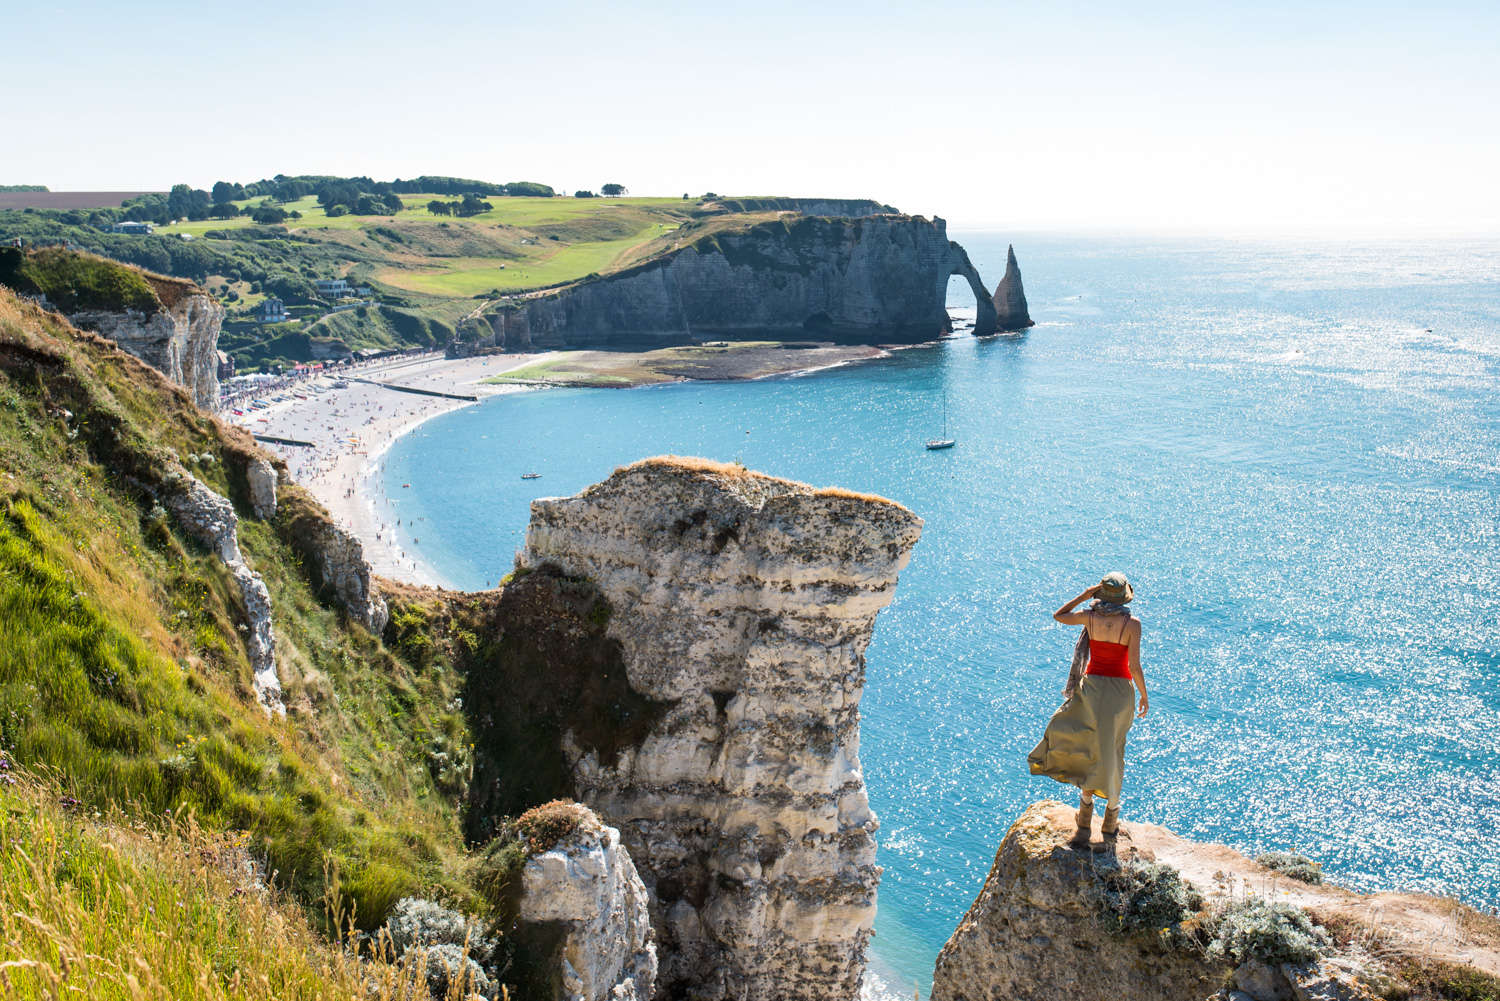 154 - Up the cliffs of Etretat in Normandy, France